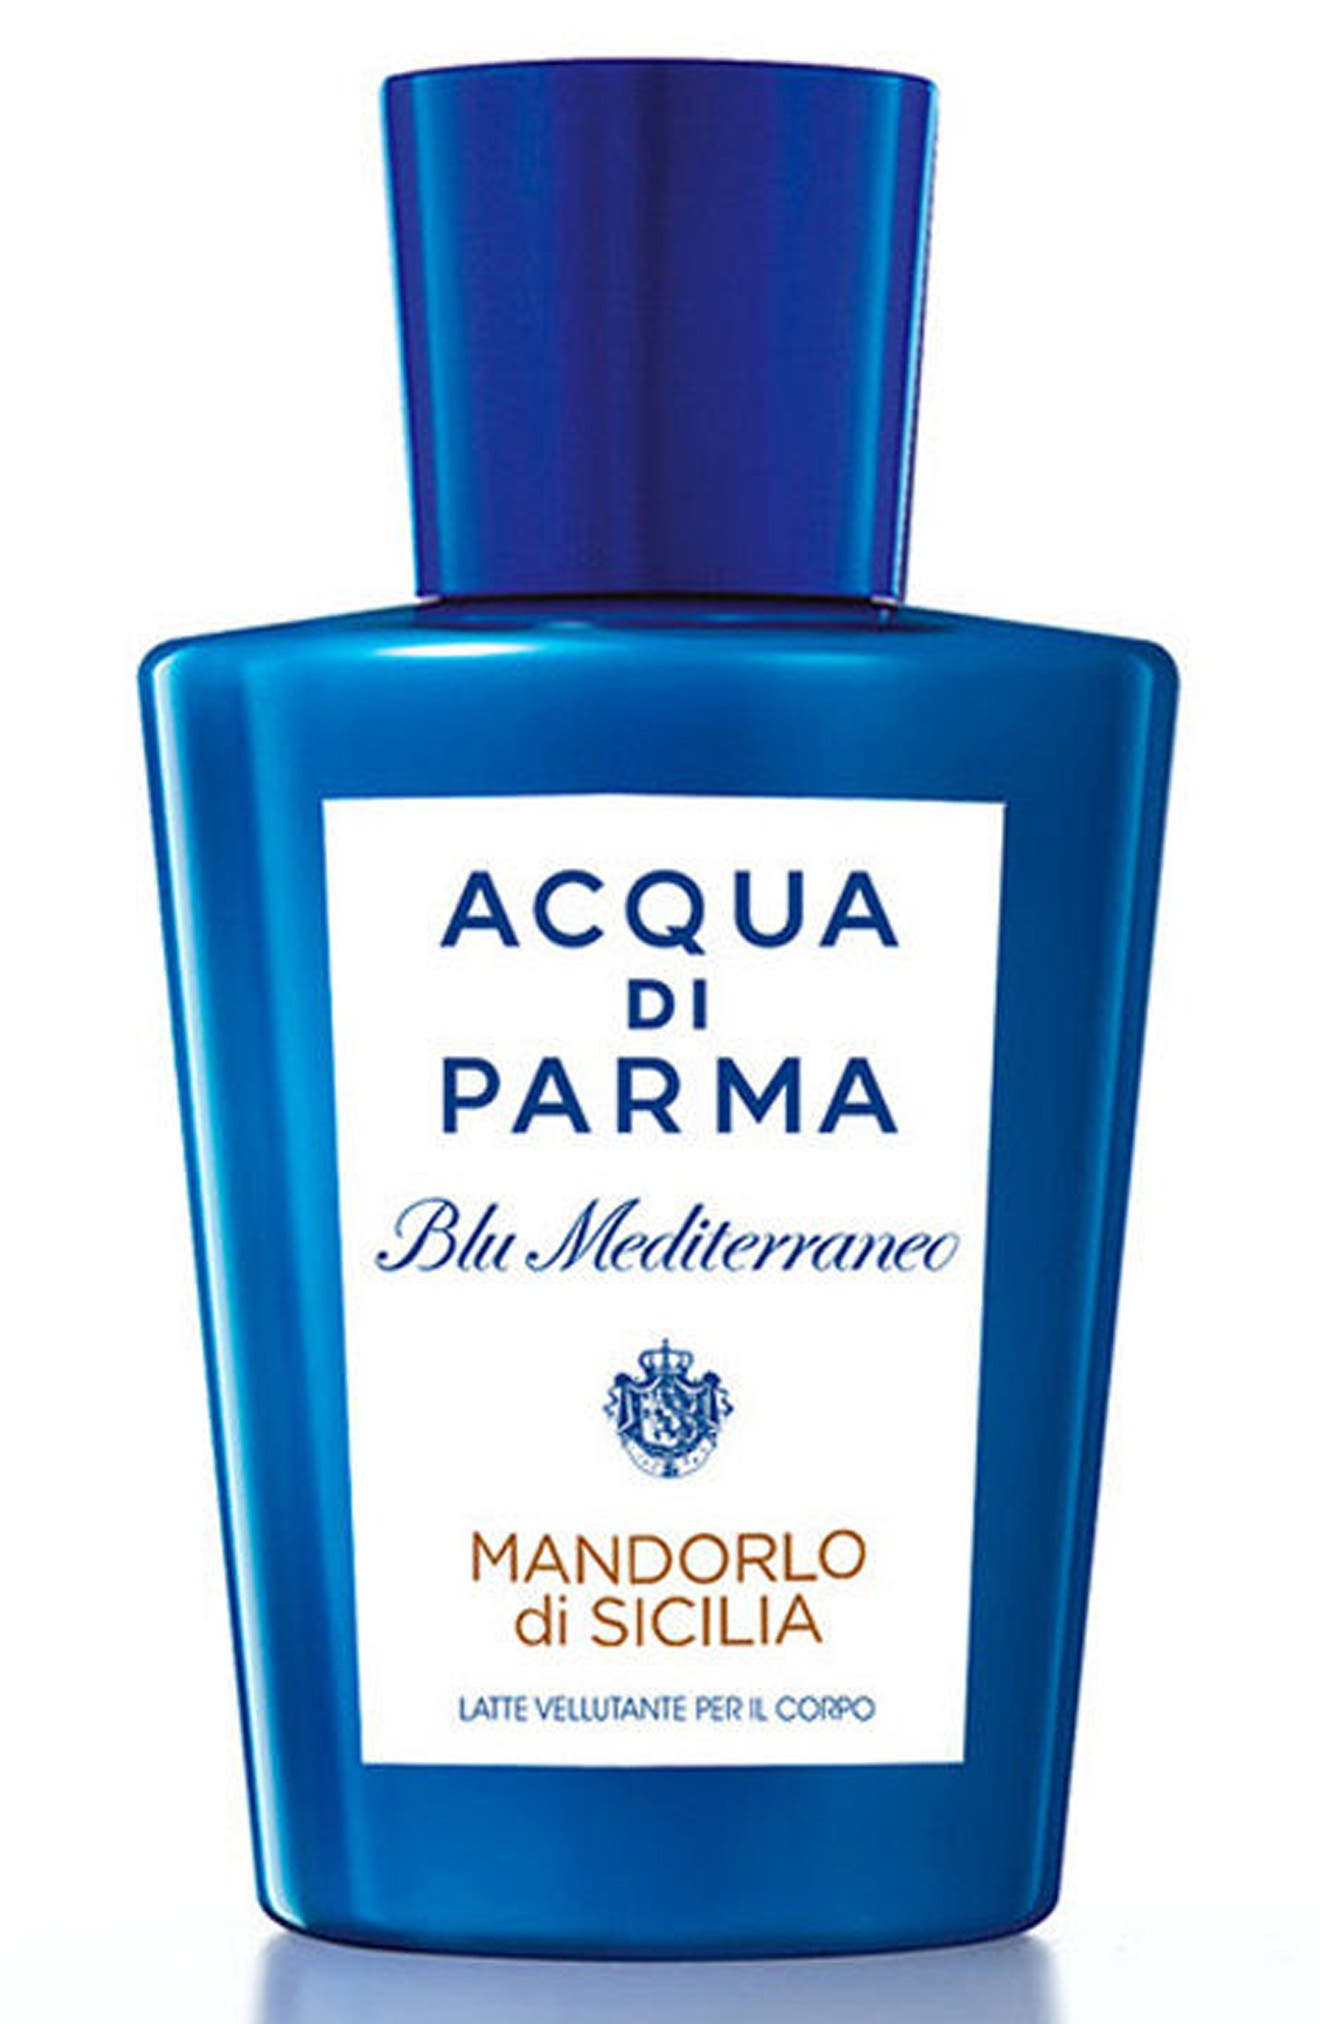 Alternate Image 1 Selected - Acqua di Parma 'Blu Mediterraneo' Mandorolo di Sicilia Body Lotion